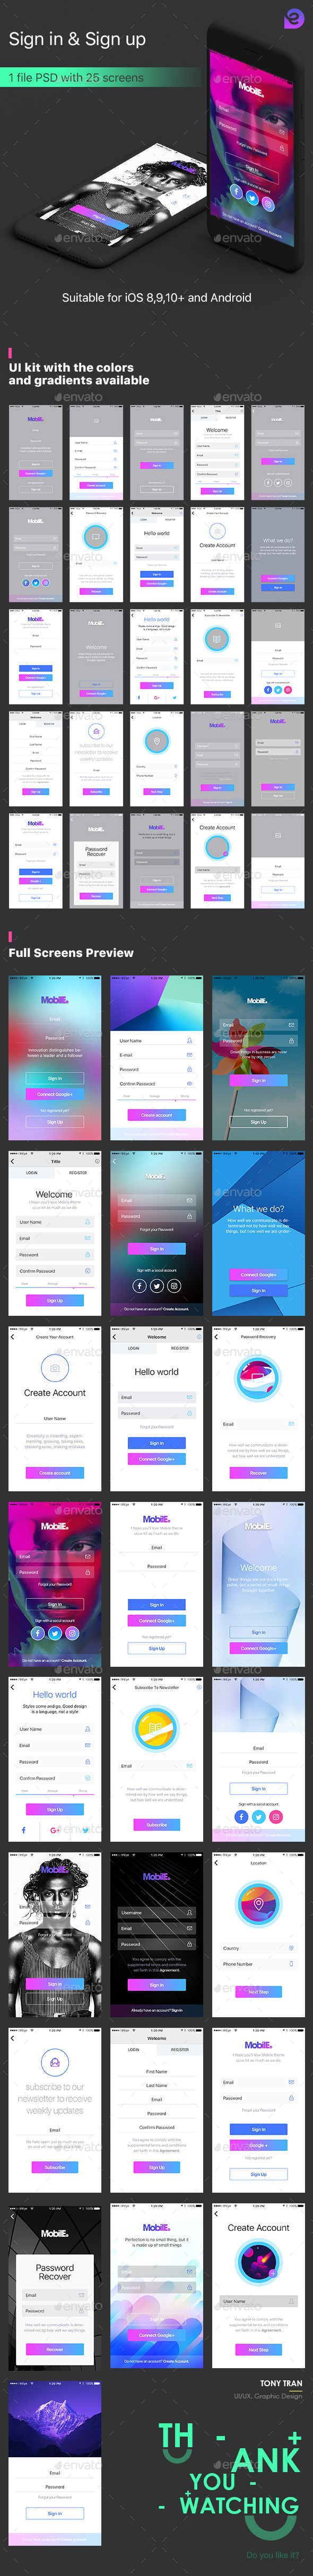 N.E.R.D - Platform Mobile UI Kit (User Interfaces)